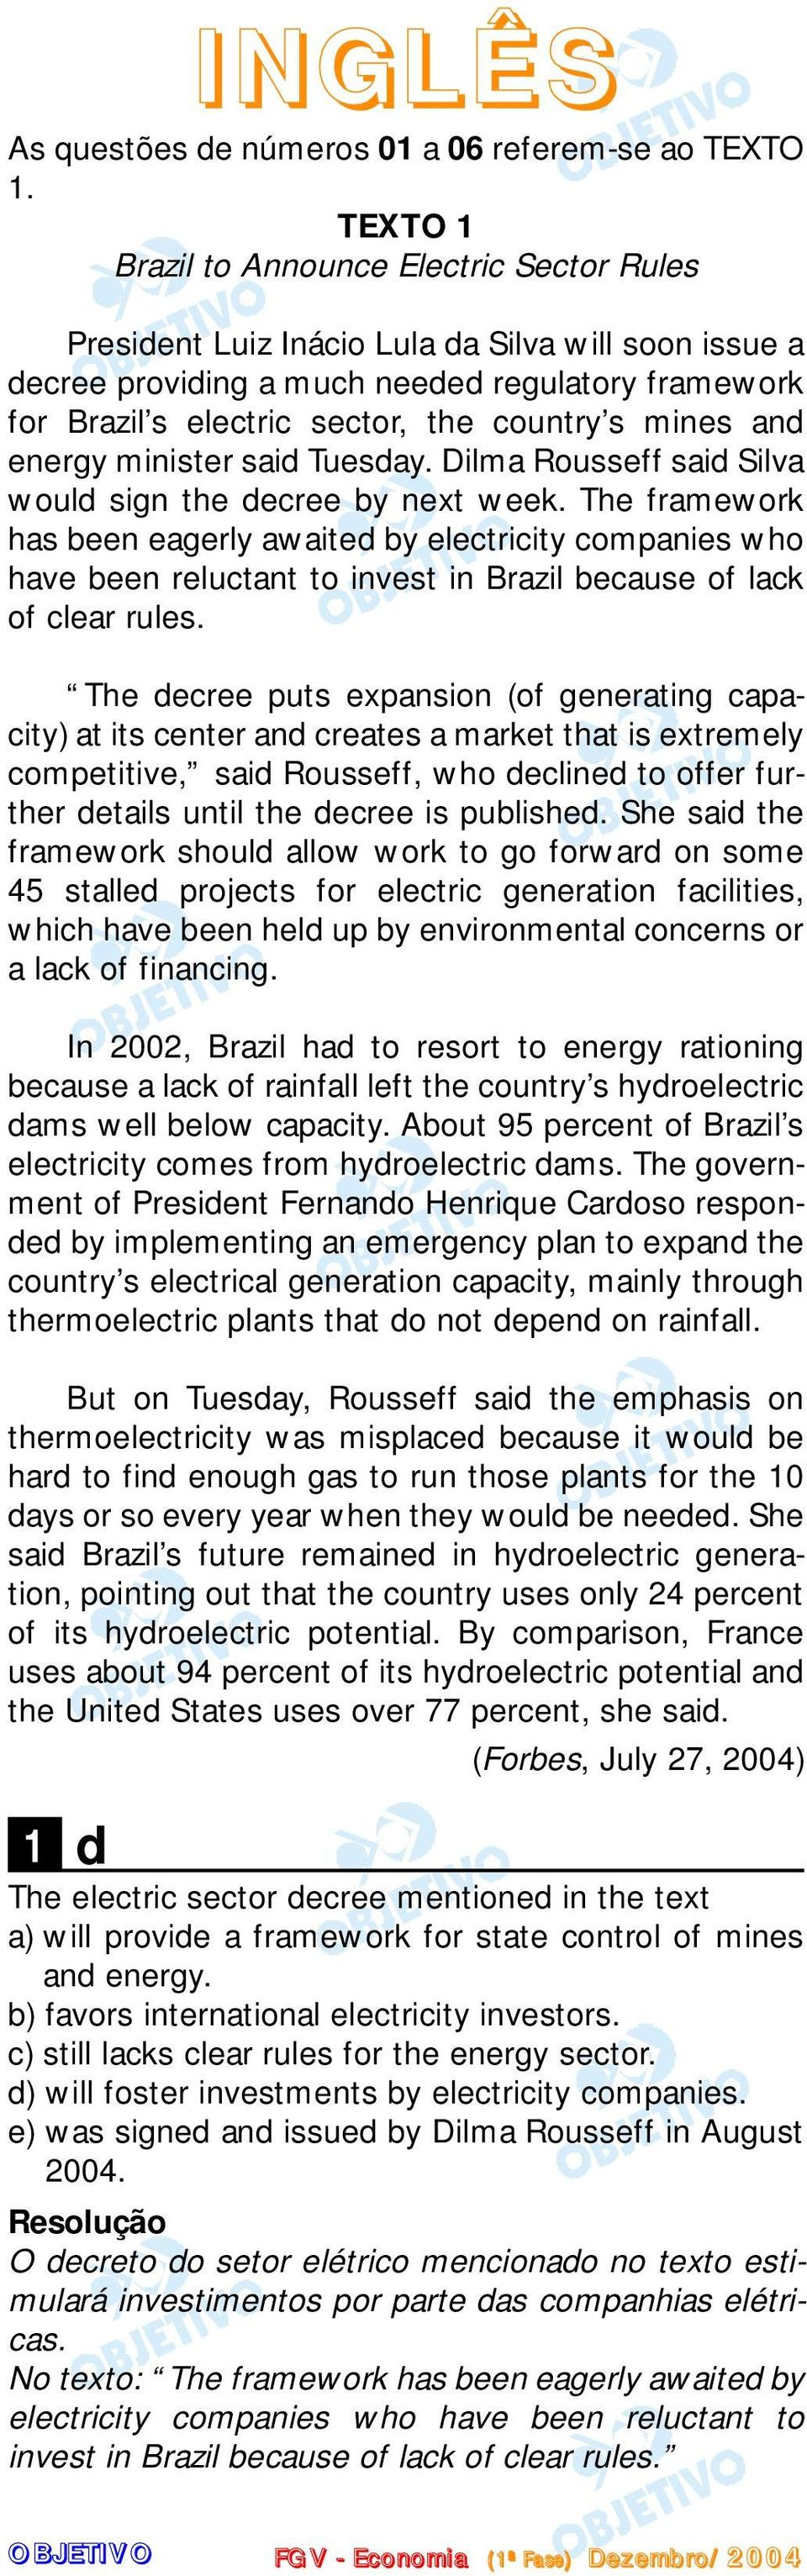 mines and energy minister said Tuesday. Dilma Rousseff said Silva would sign the decree by next week.